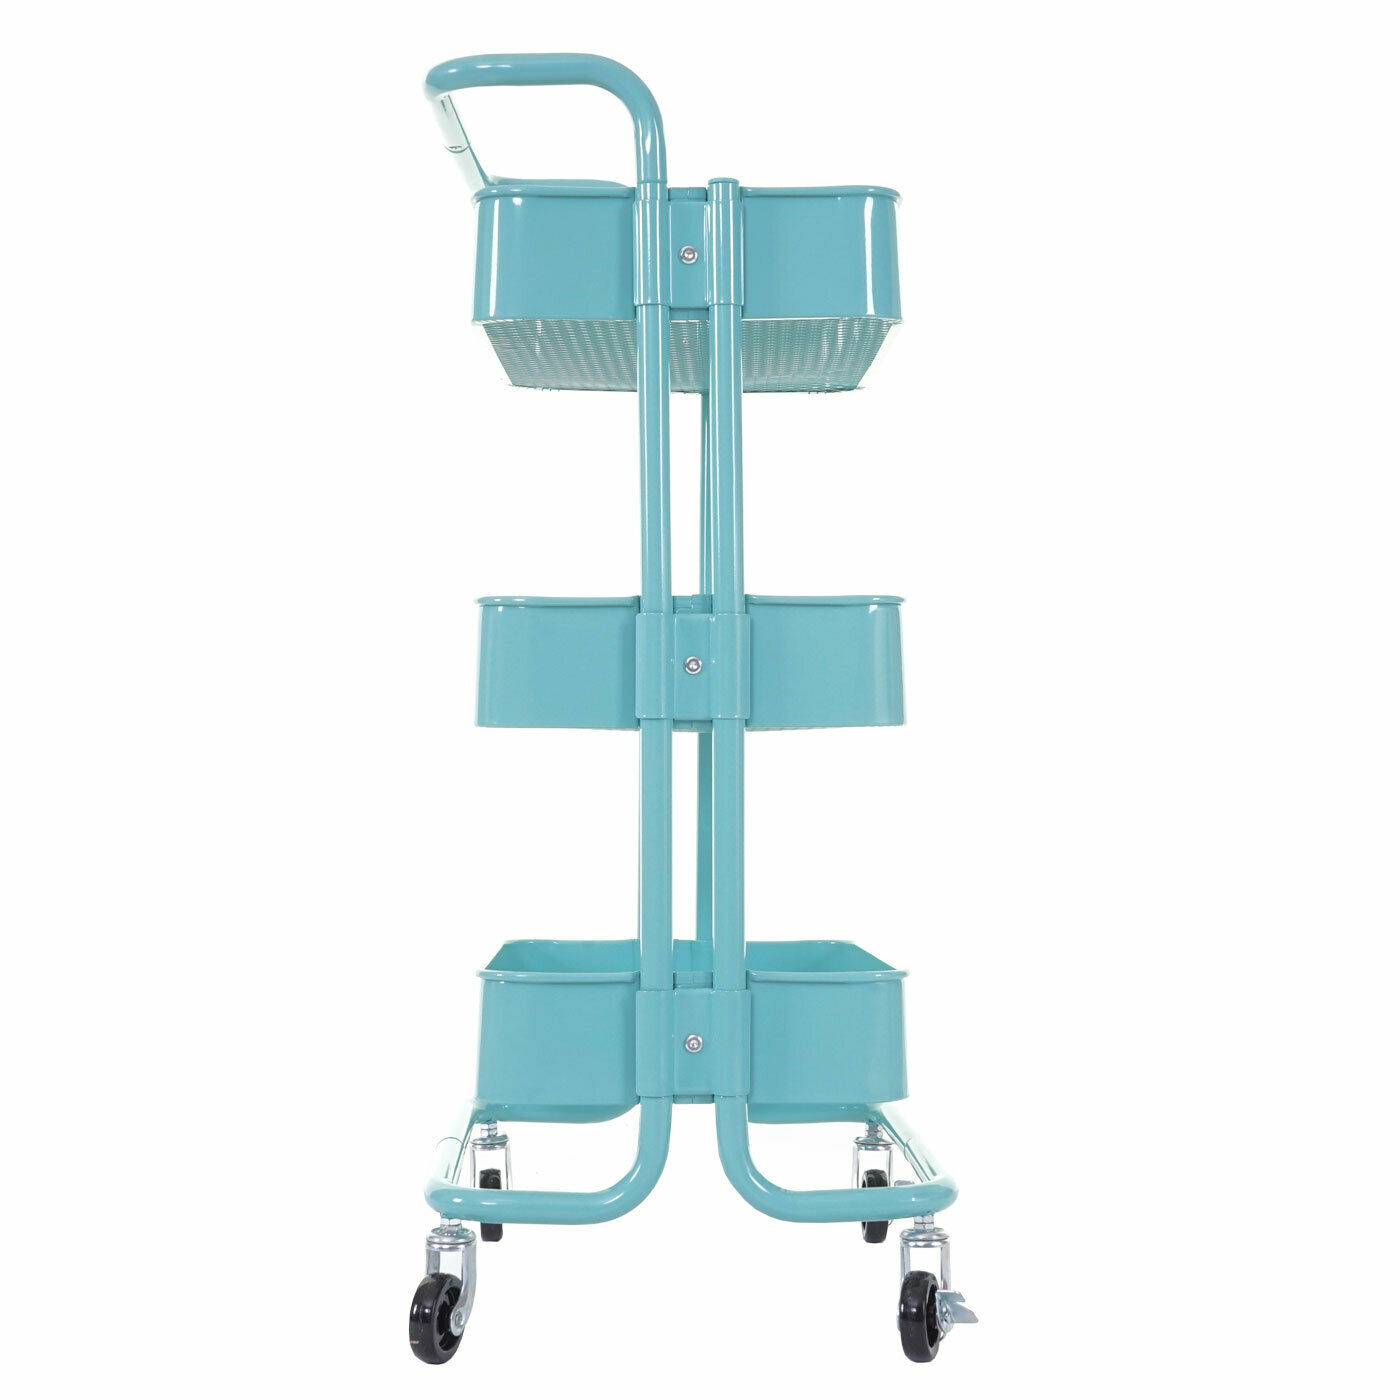 B-Ware Serving Trolley MCW-C64, Kitchen Trolley Bar Cart, Mint with Handle